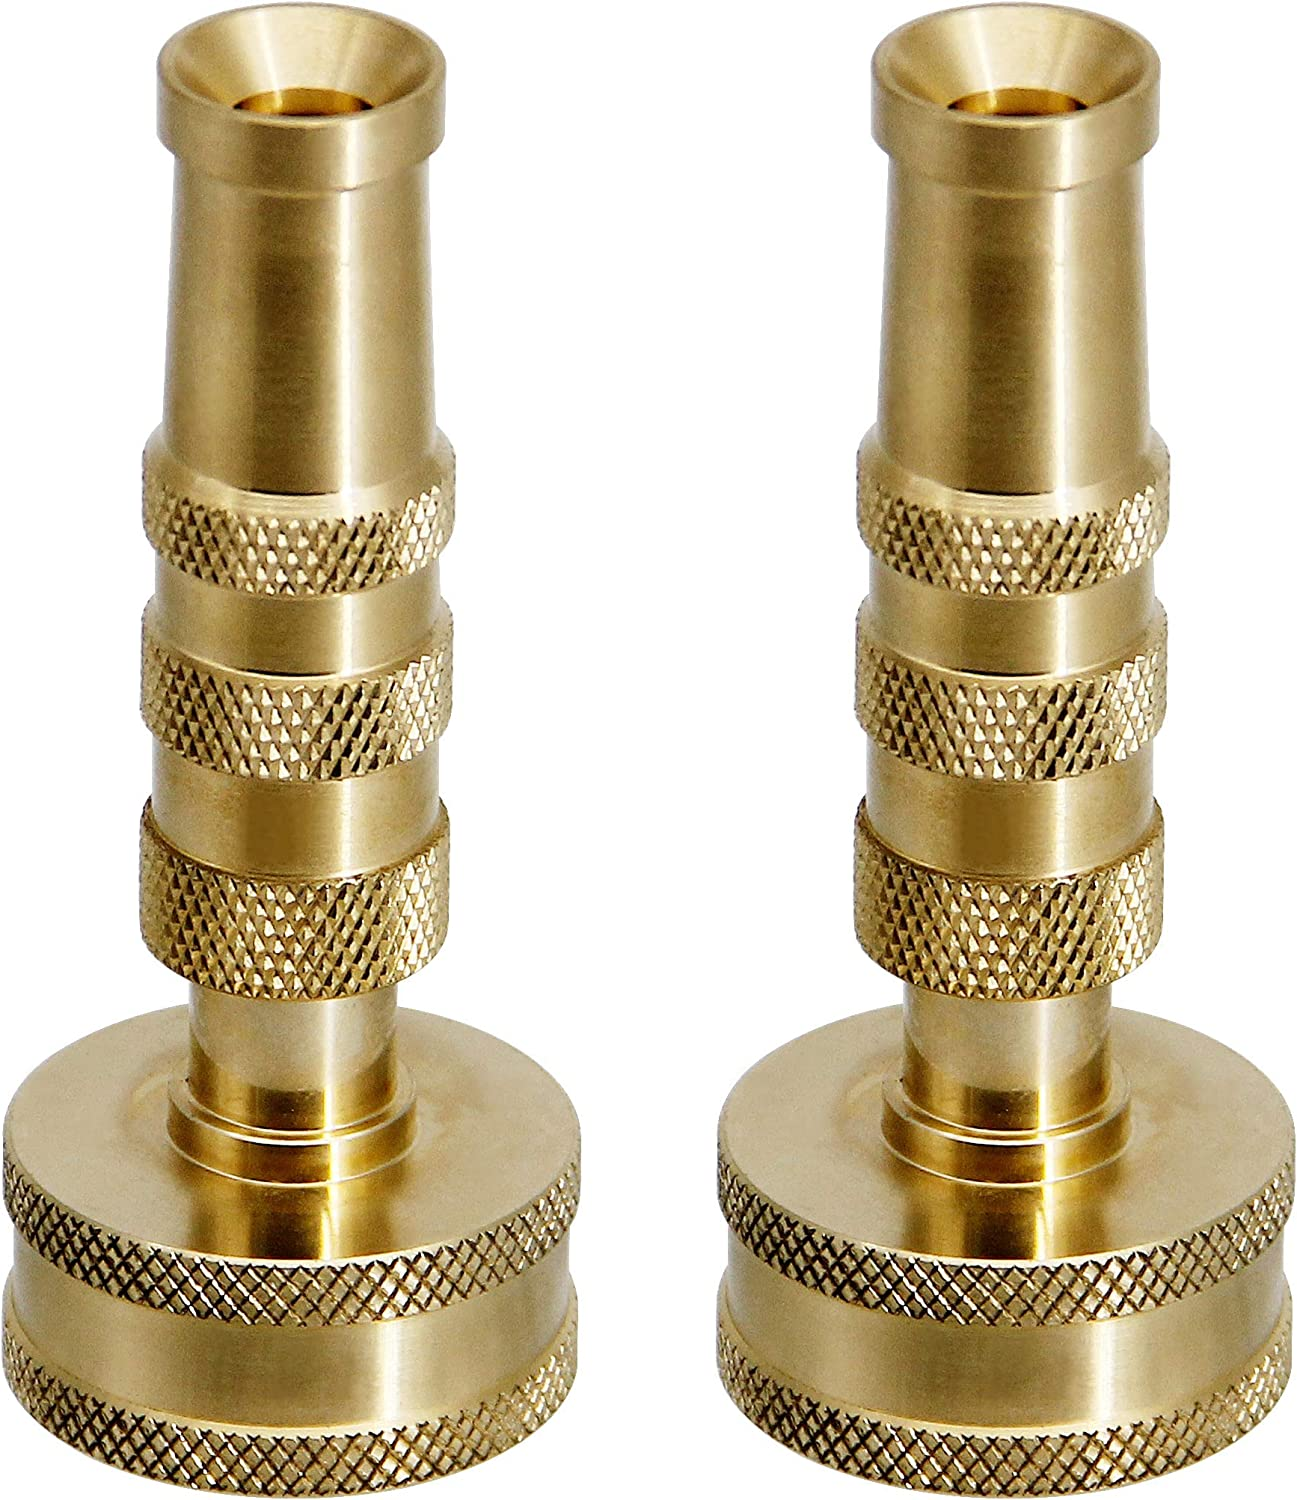 "ATDAWN Brass Hose Nozzle, Heavy-Duty Brass Adjustable Twist Hose Nozzle, 2 Pack (3"")"